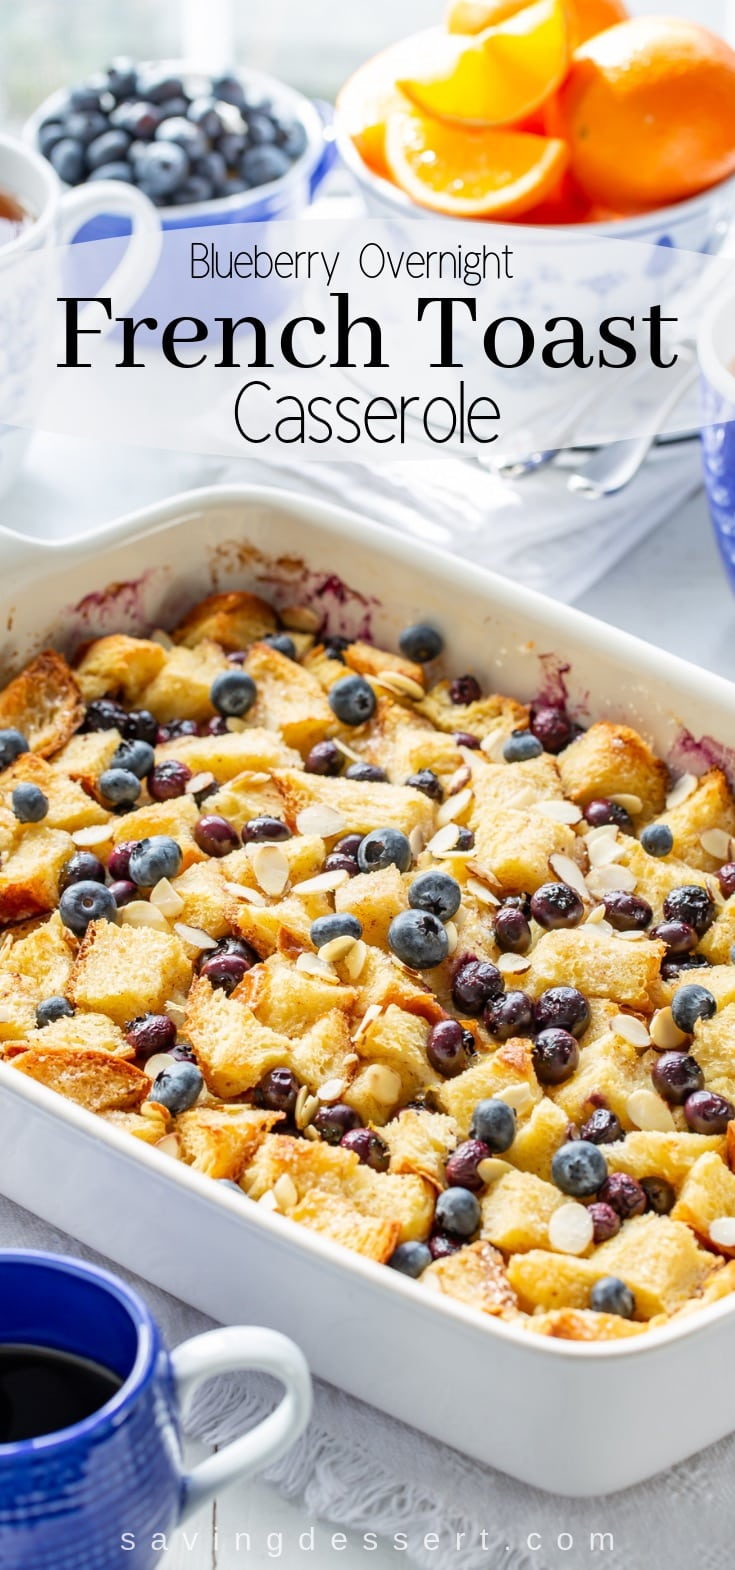 Blueberry Overnight French Toast Casserole - anybody can make this delicious weekend brunch favorite easily assembled the night before then baked in the morning. #frenchtoast #blueberrycasserole #blueberryfrenchtoast #breakfastcasserole #overnightcasserole ##blueberryfrenchtoastcasserole #overnight #brunch #breakfast #mothersday